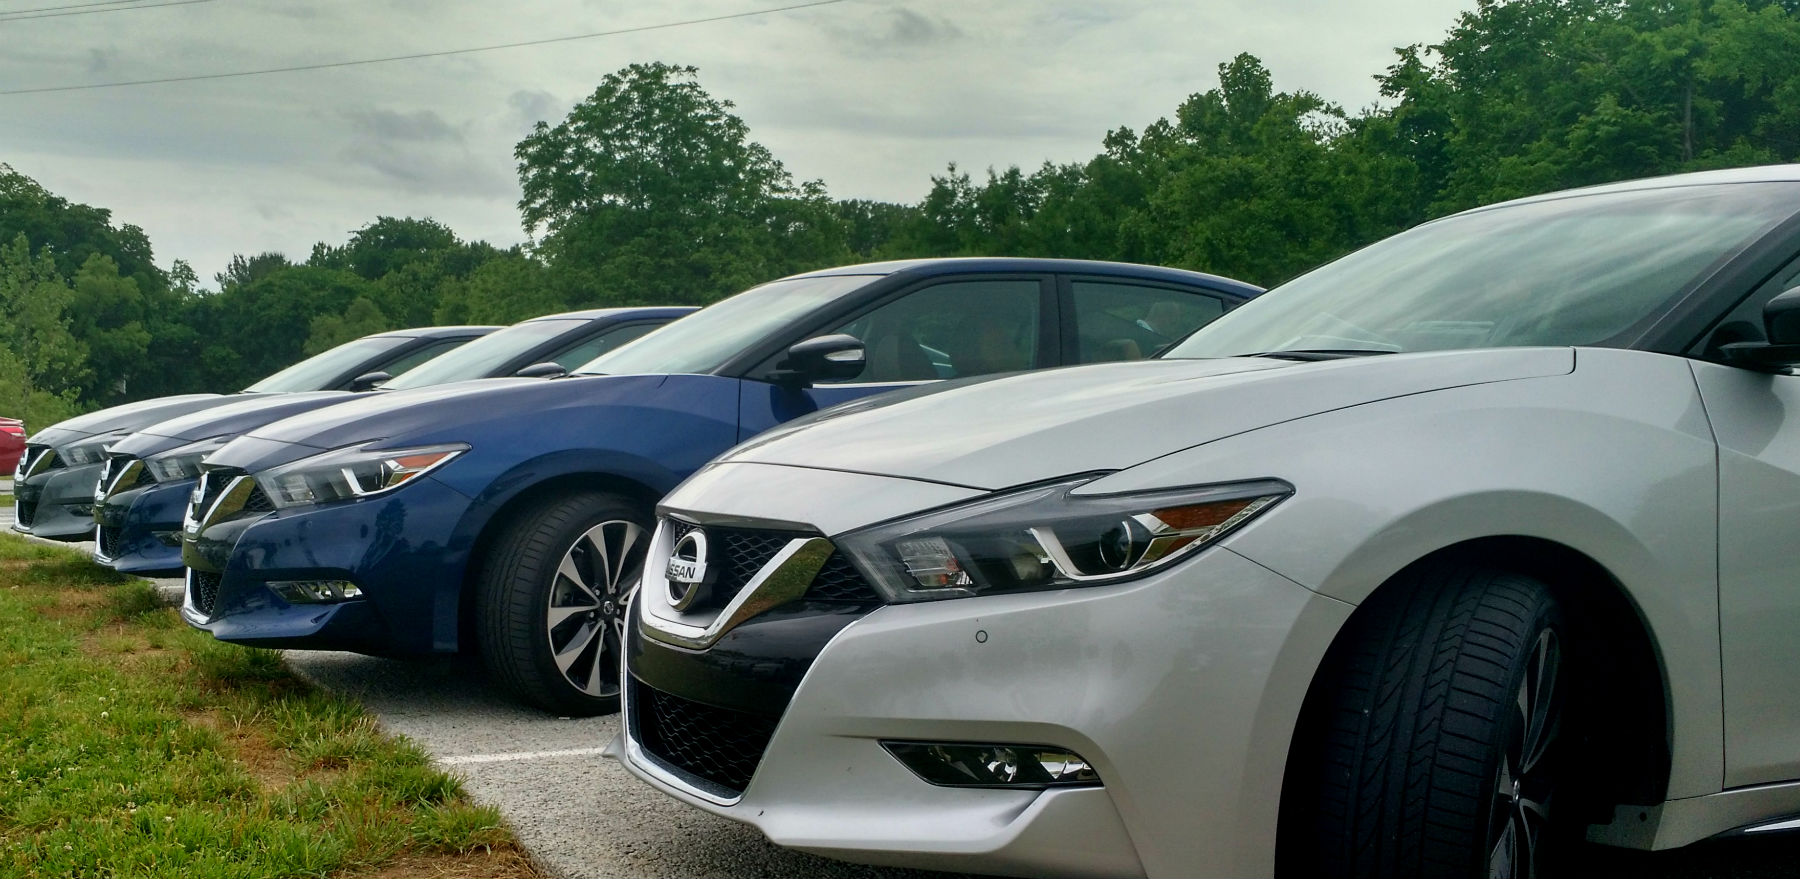 2016 Nissan Maxima - We Review the 4 Door Sports Car - The